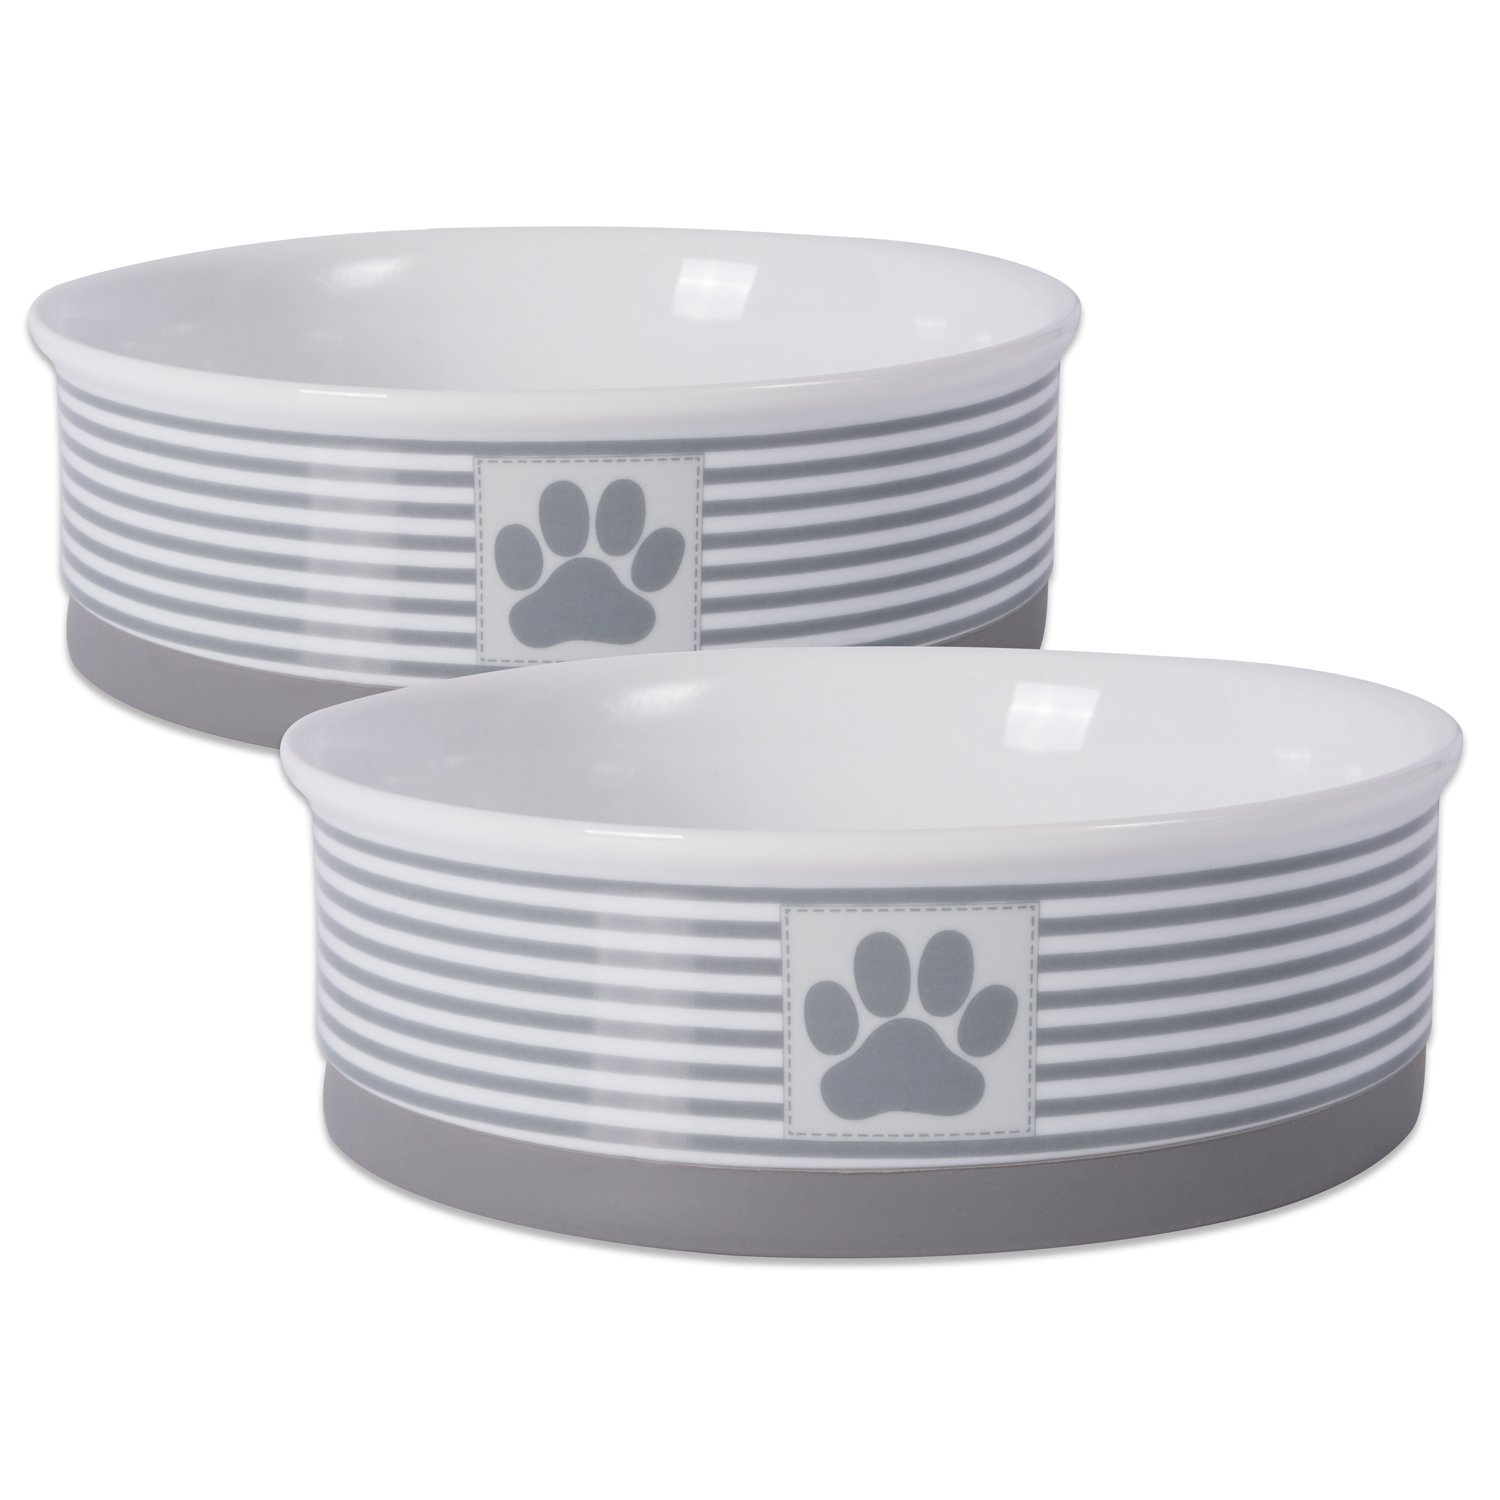 DII Bone Dry Ceramic Pet Bowl For Food & Water With Non-Skid Silicone Rim for...